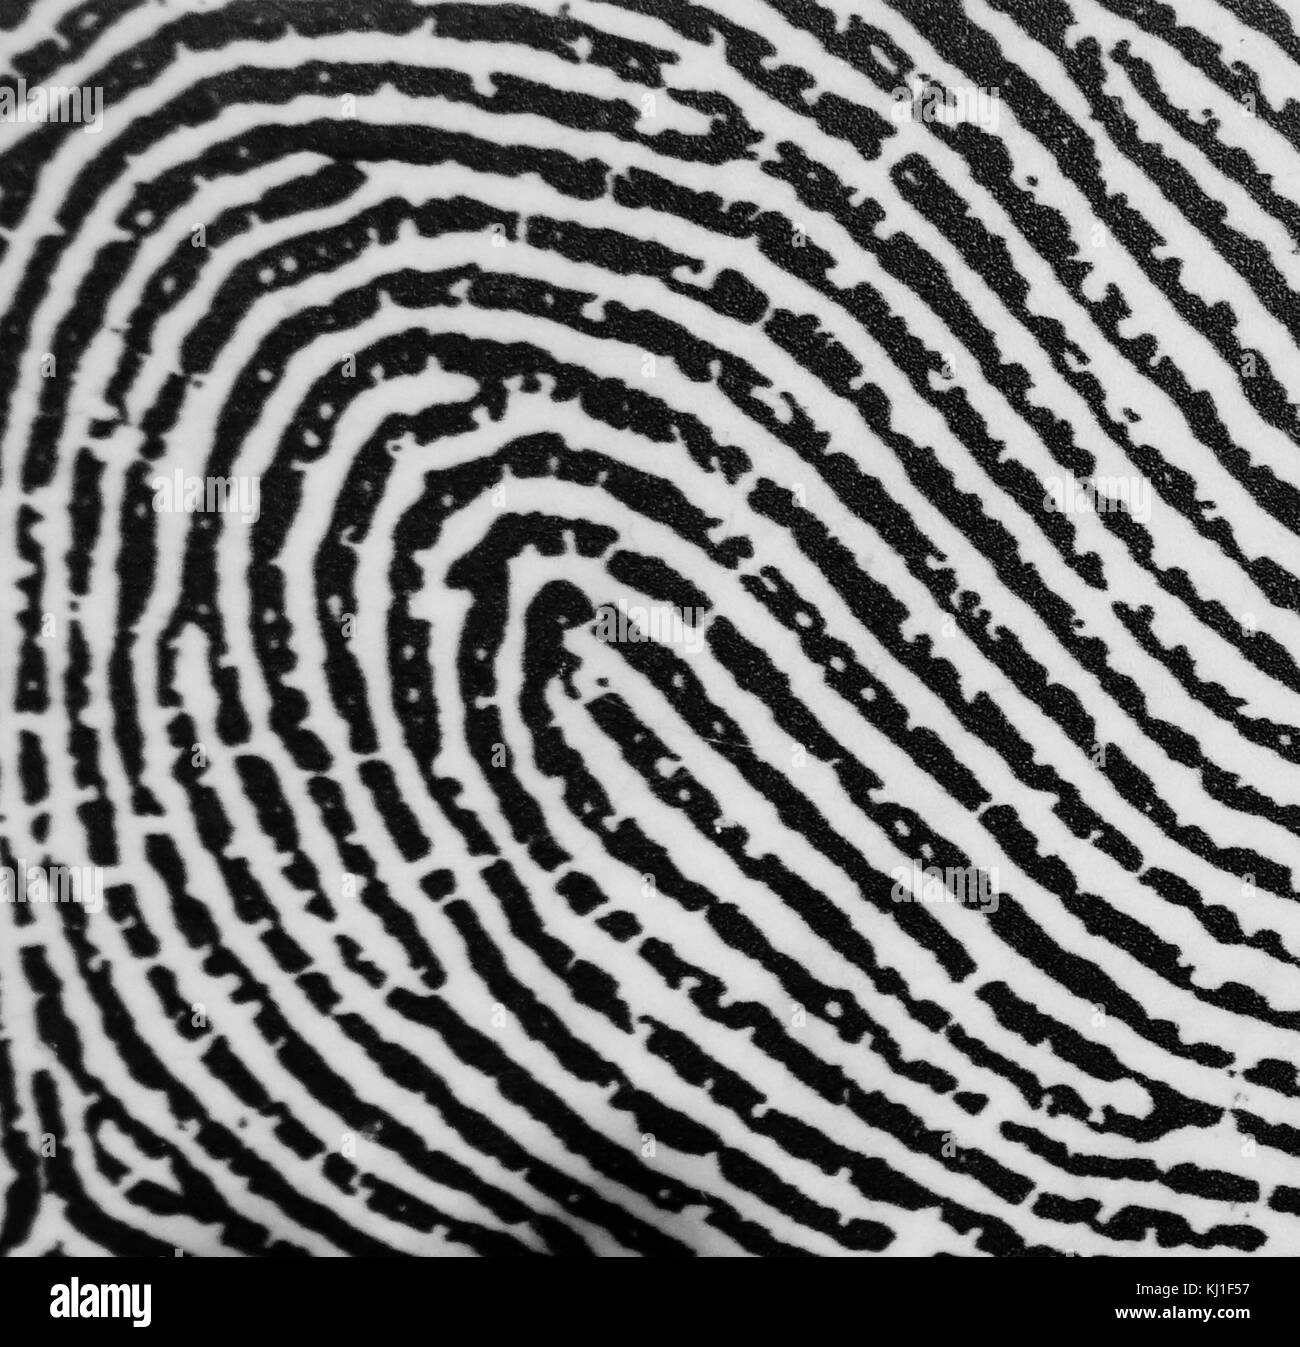 An Arch fingerprint. Fingerprints are an impression left by the friction ridges of a human finger. The recovery - Stock Image